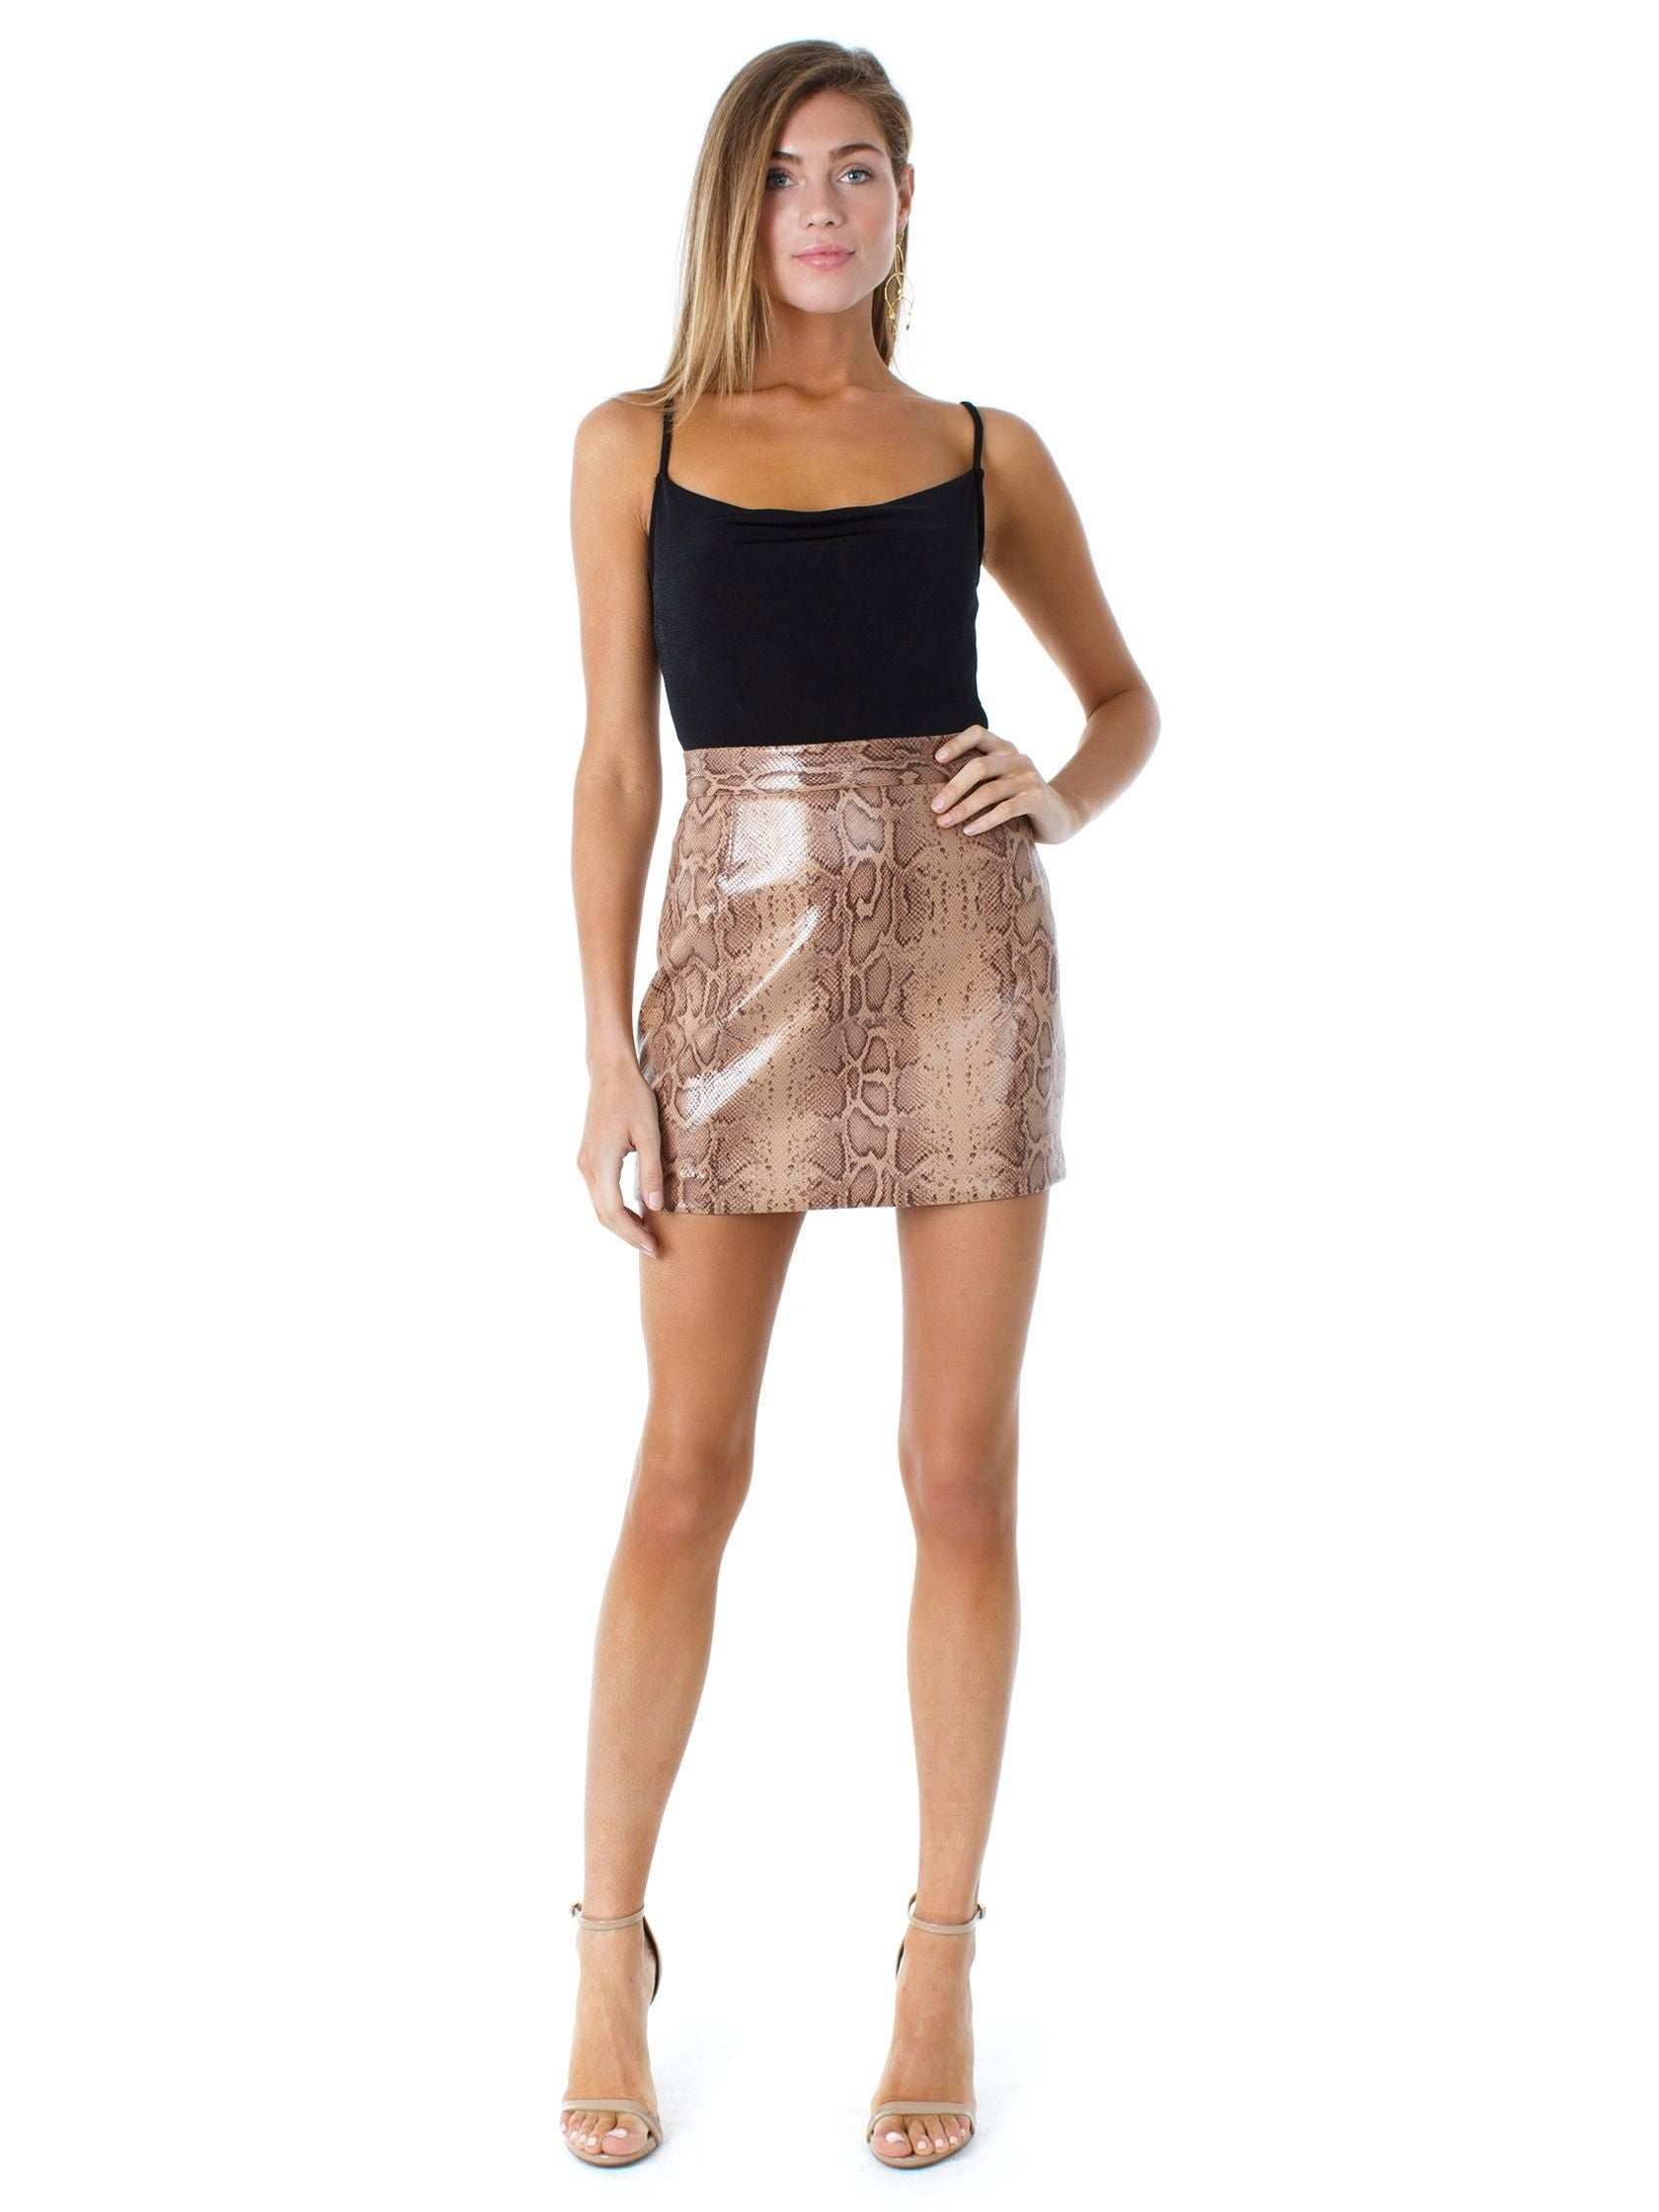 Girl wearing a skirt rental from BB Dakota called Hissy Fit